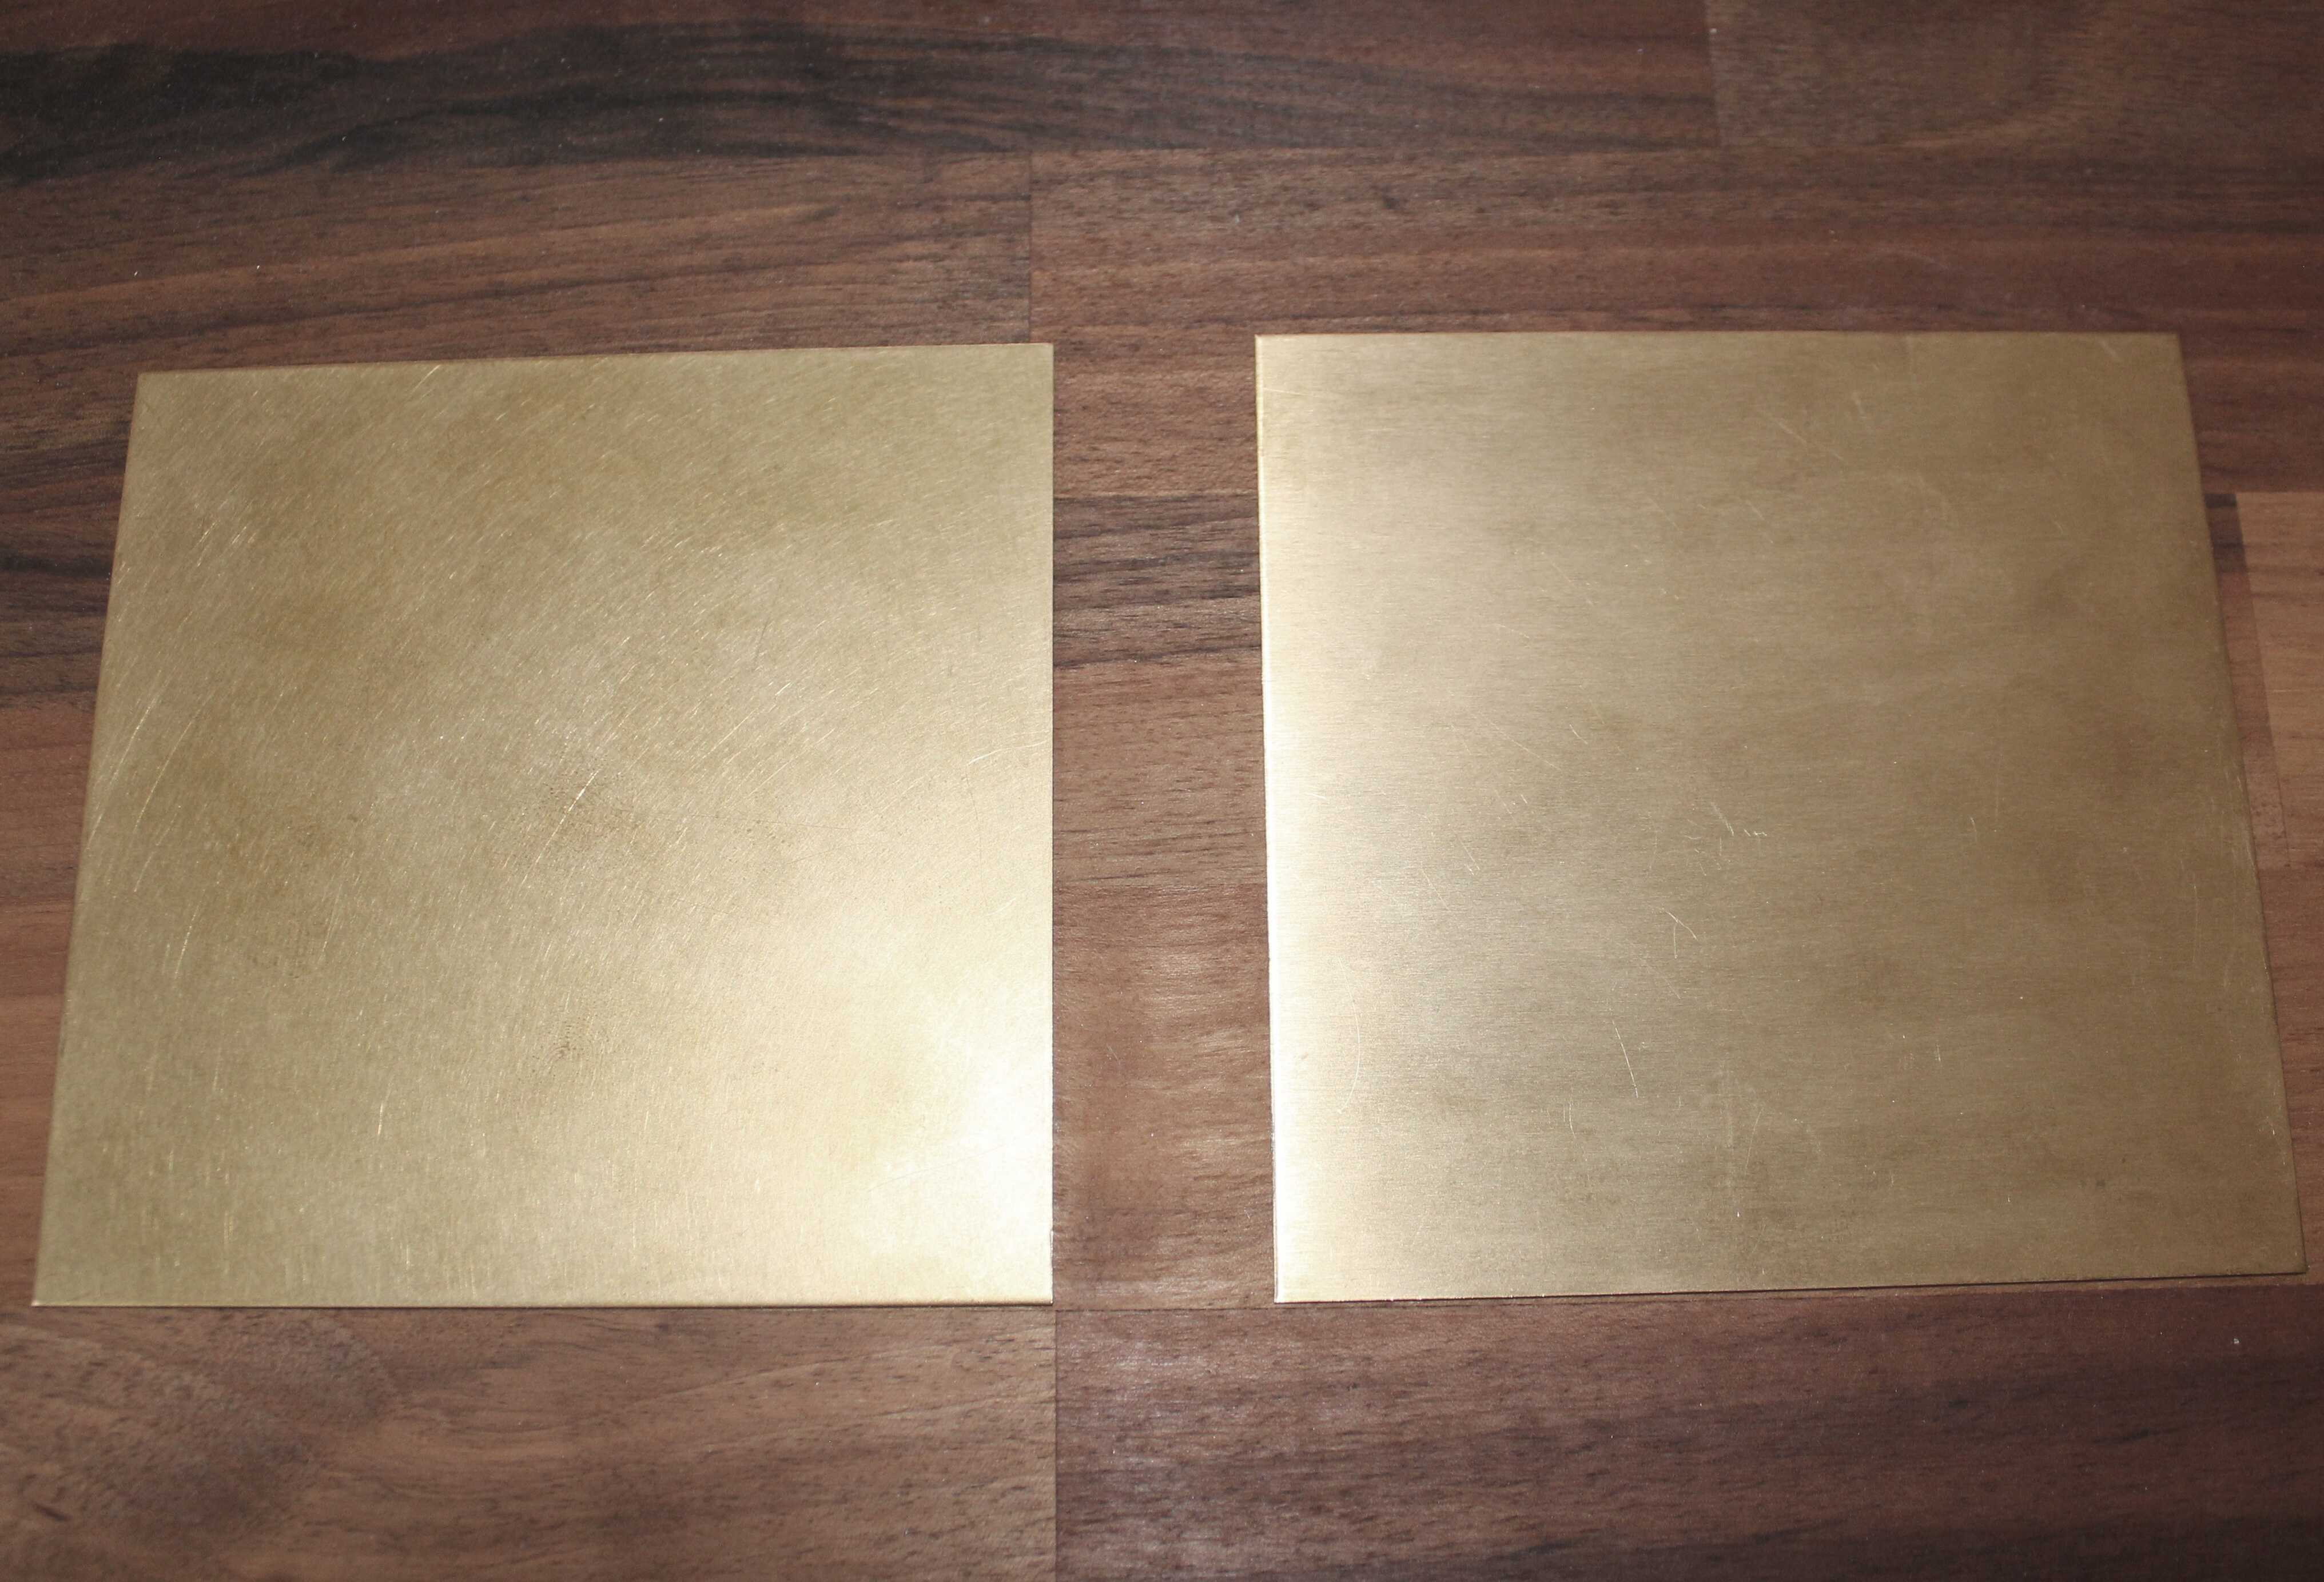 Satin-vs-Brushed-brass-table-top